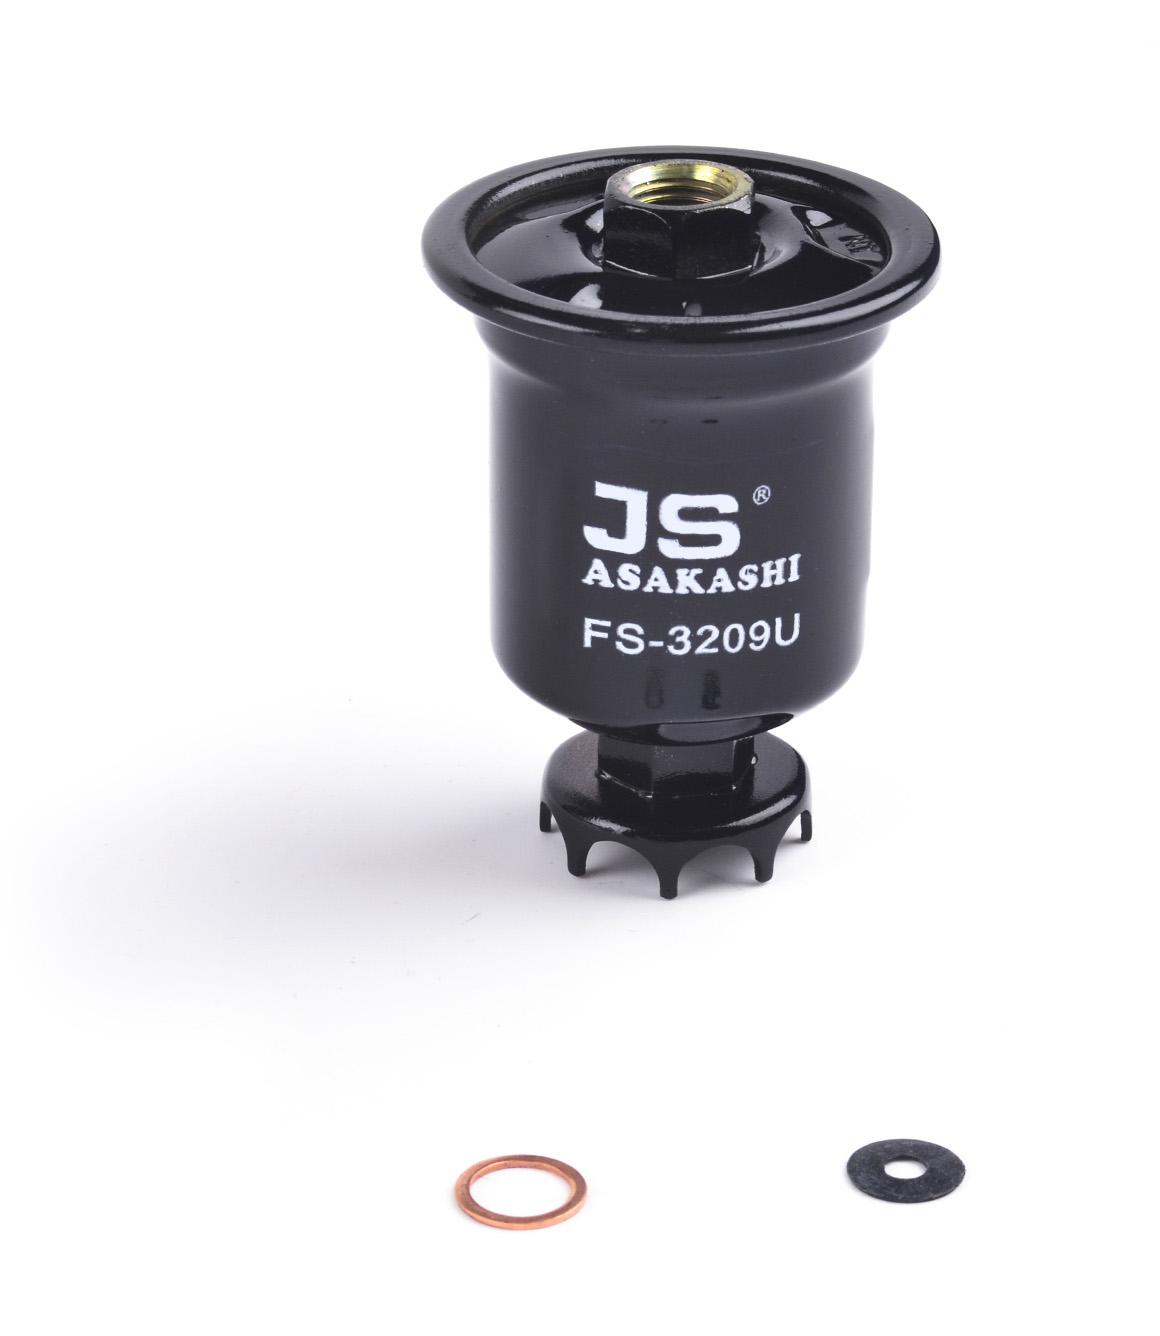 Fs3209u Efi Fuel Filter For Toyota 23300 11150 19385 Cabrio 19445 46060 49175 49195 74210